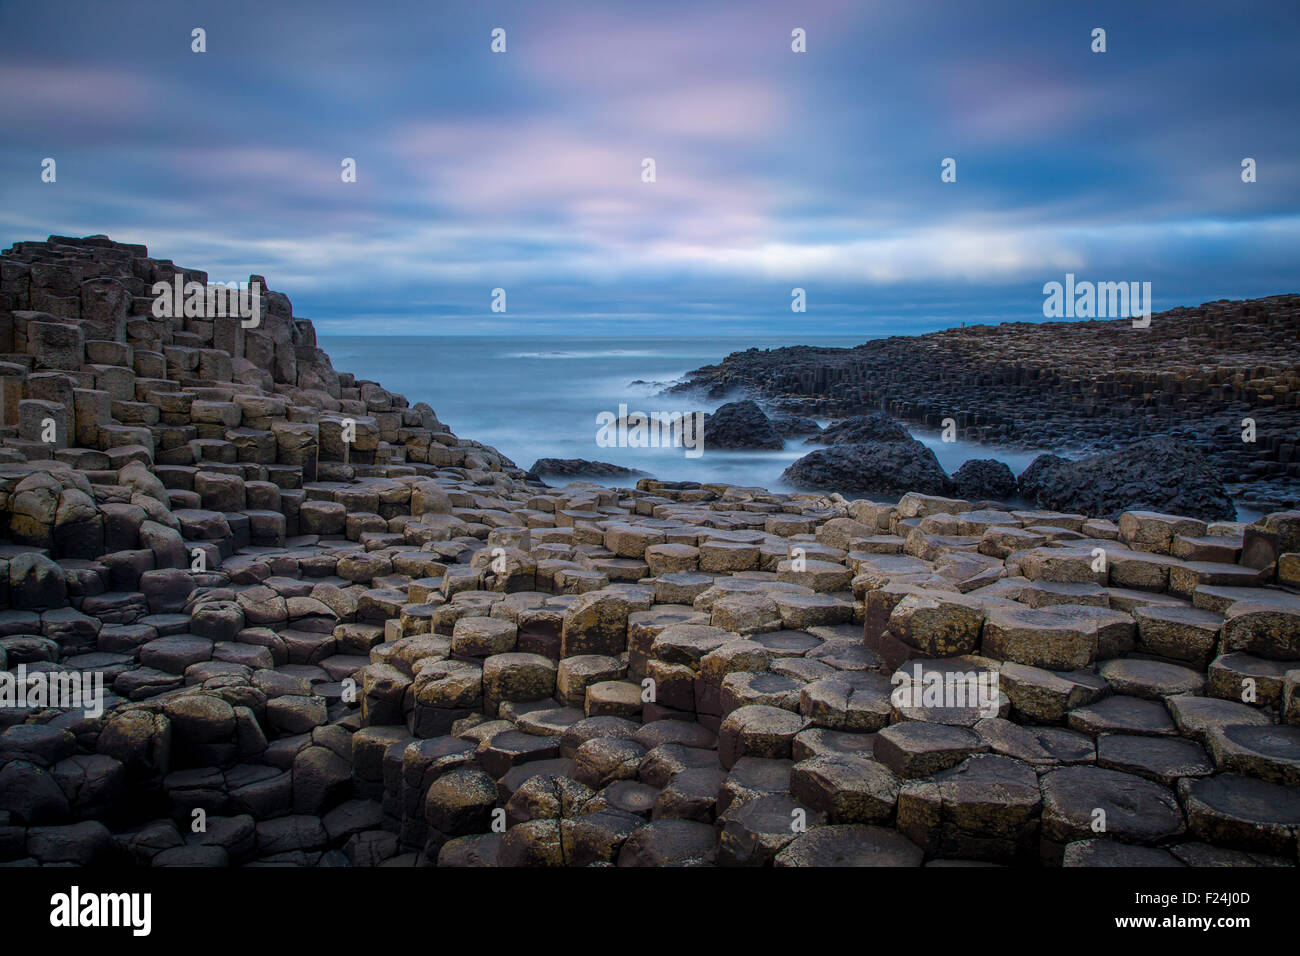 Twilight over the Giant's Causeway along the northern coast, County Antrim, Northern Ireland, UK - Stock Image